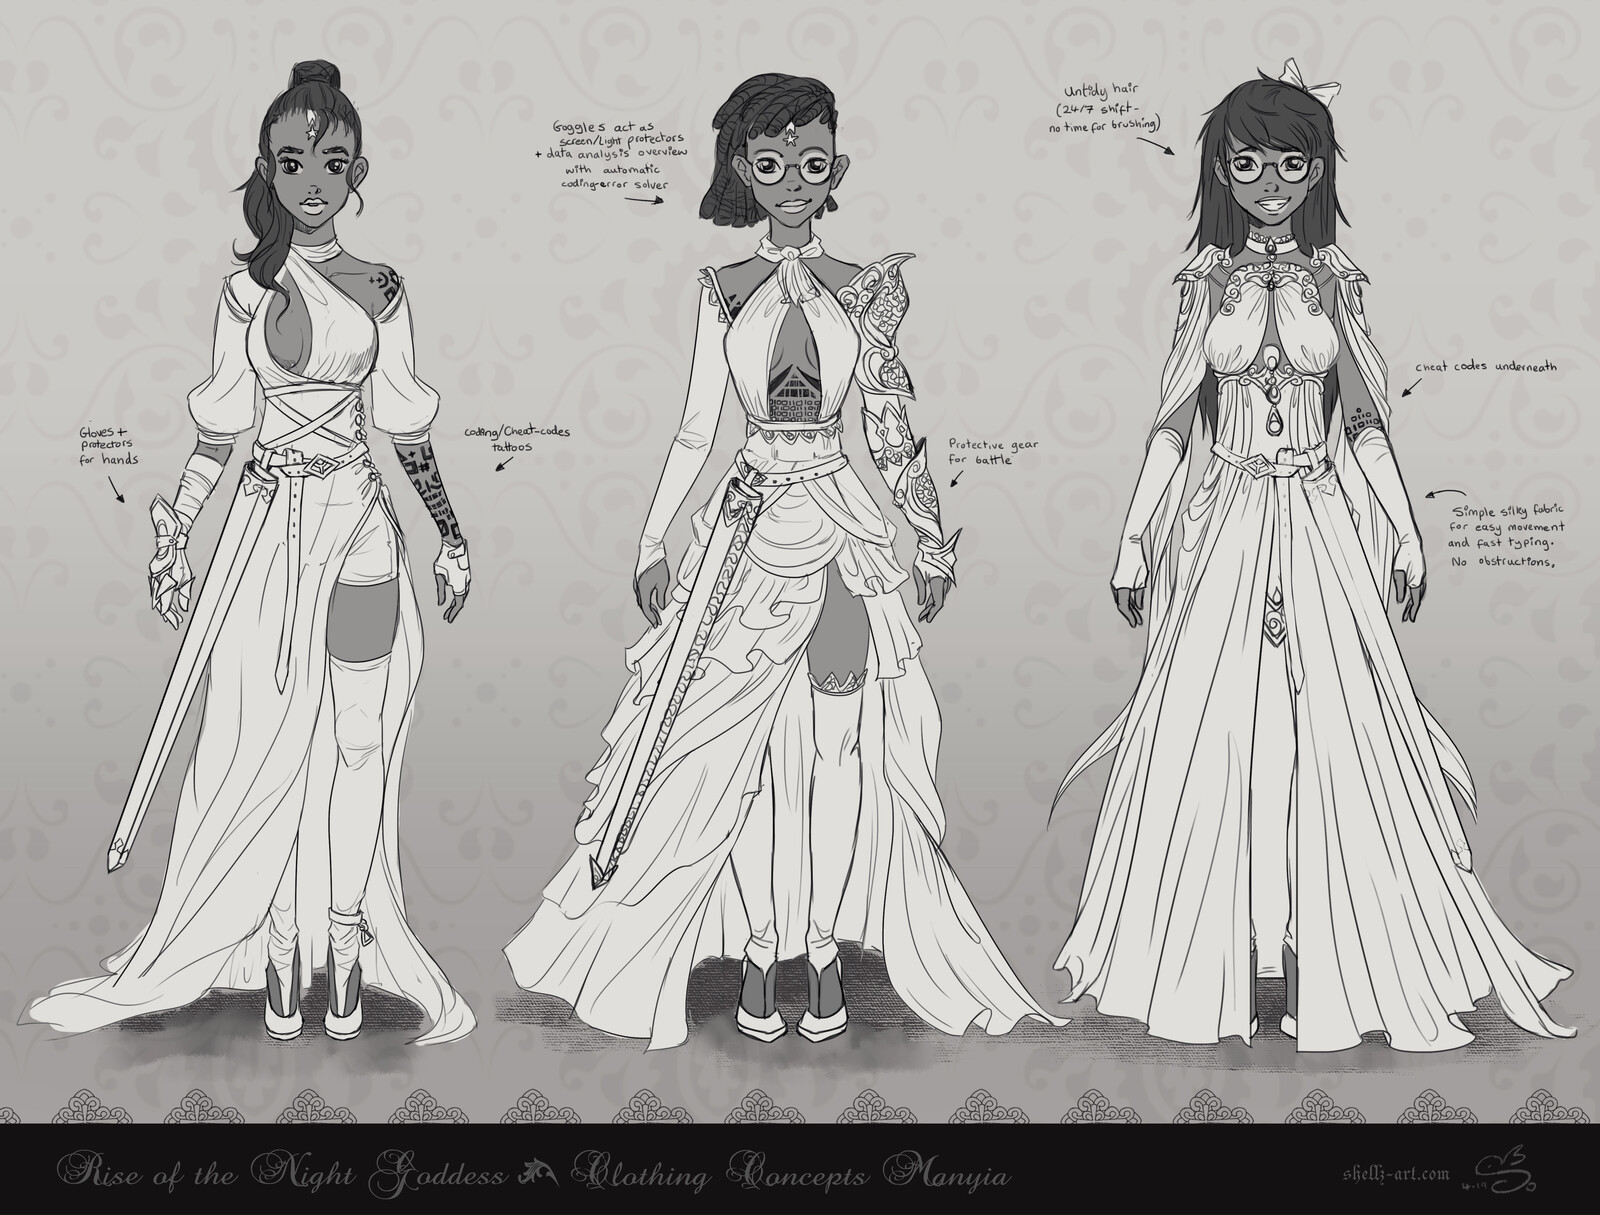 Avalerion Books | Rise of the Night Goddess - Manyia Concepts